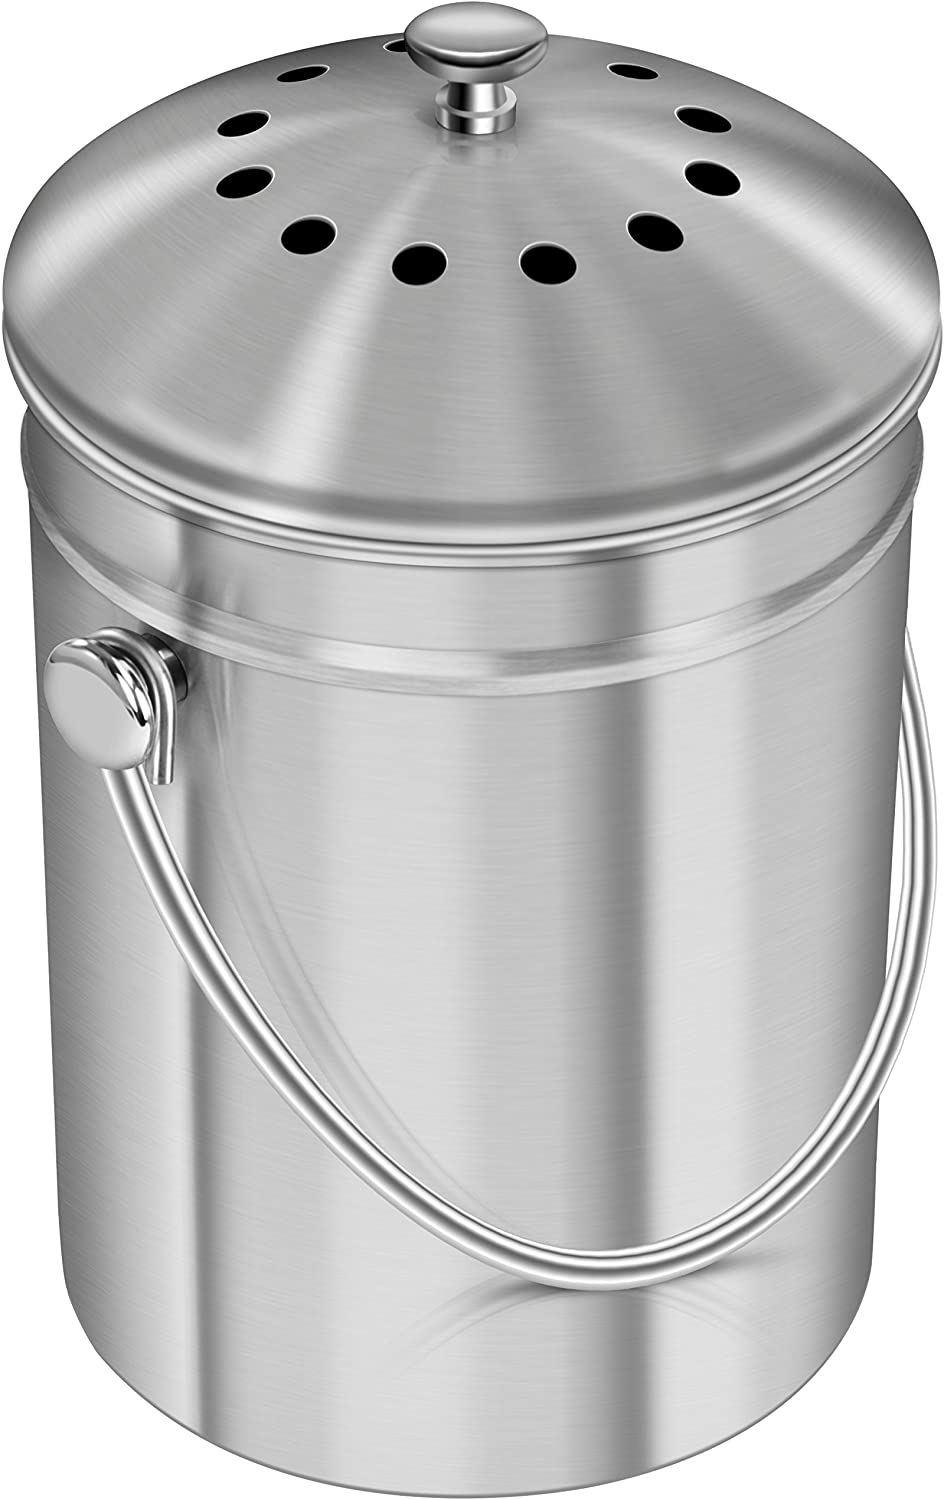 Amazon Com Utopia Kitchen Compost Bin For Kitchen Countertop 1 3 Gallon Compost Bucket For Kitchen With Lid Includes 1 Spare Charcoal Filter Kitchen Dining